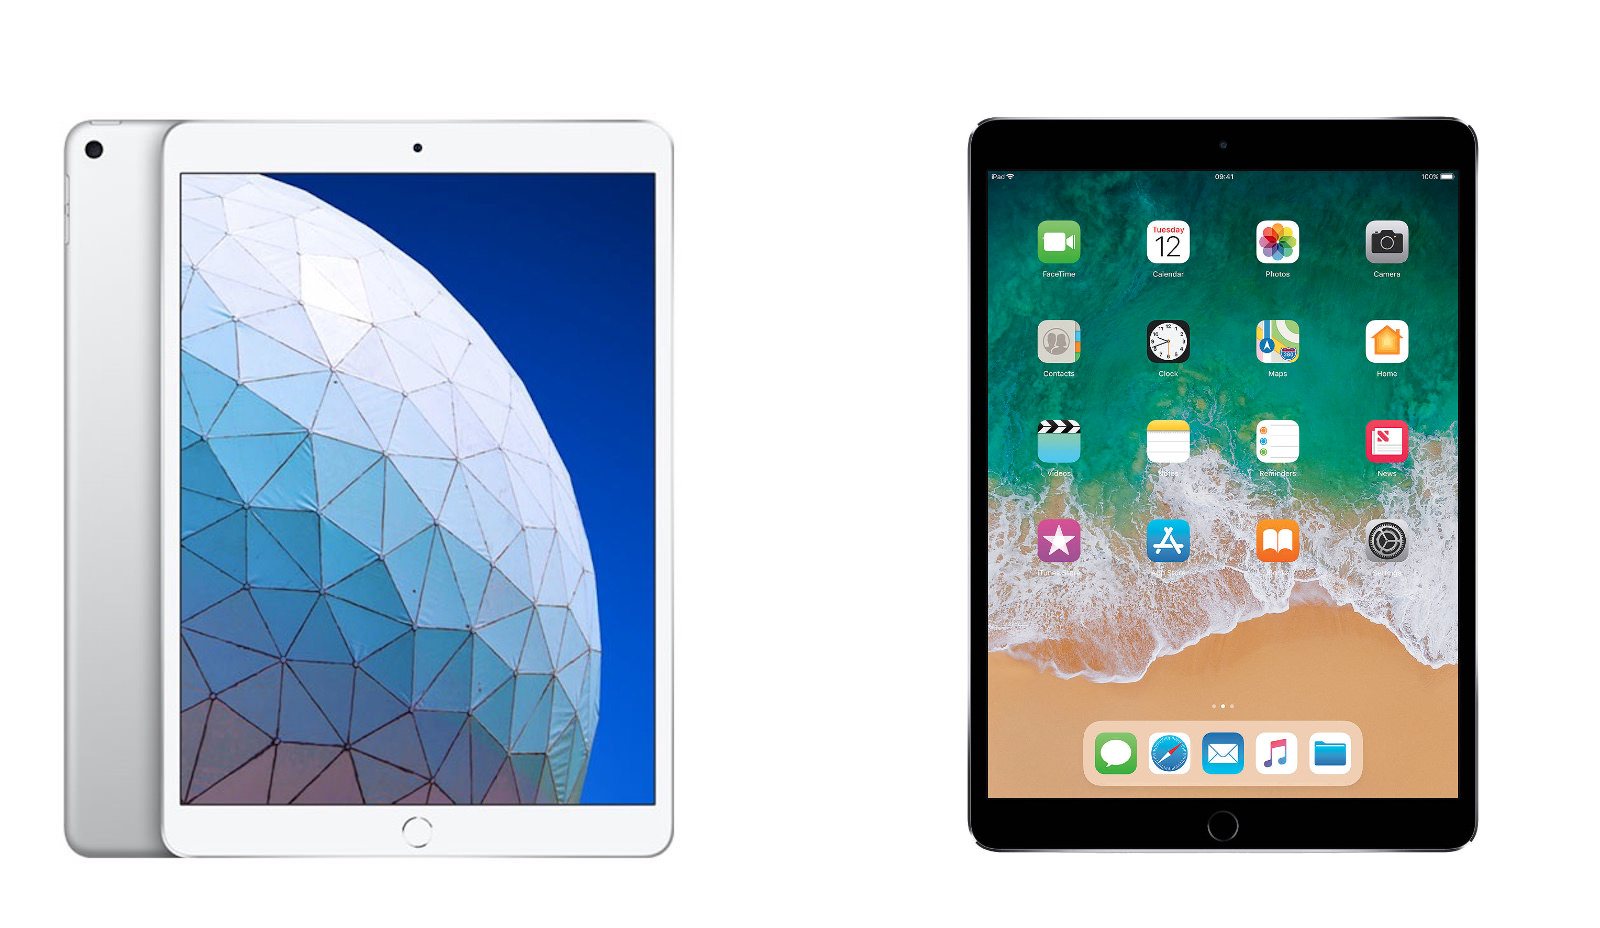 Ipad air 2019 vs ipad pro 105